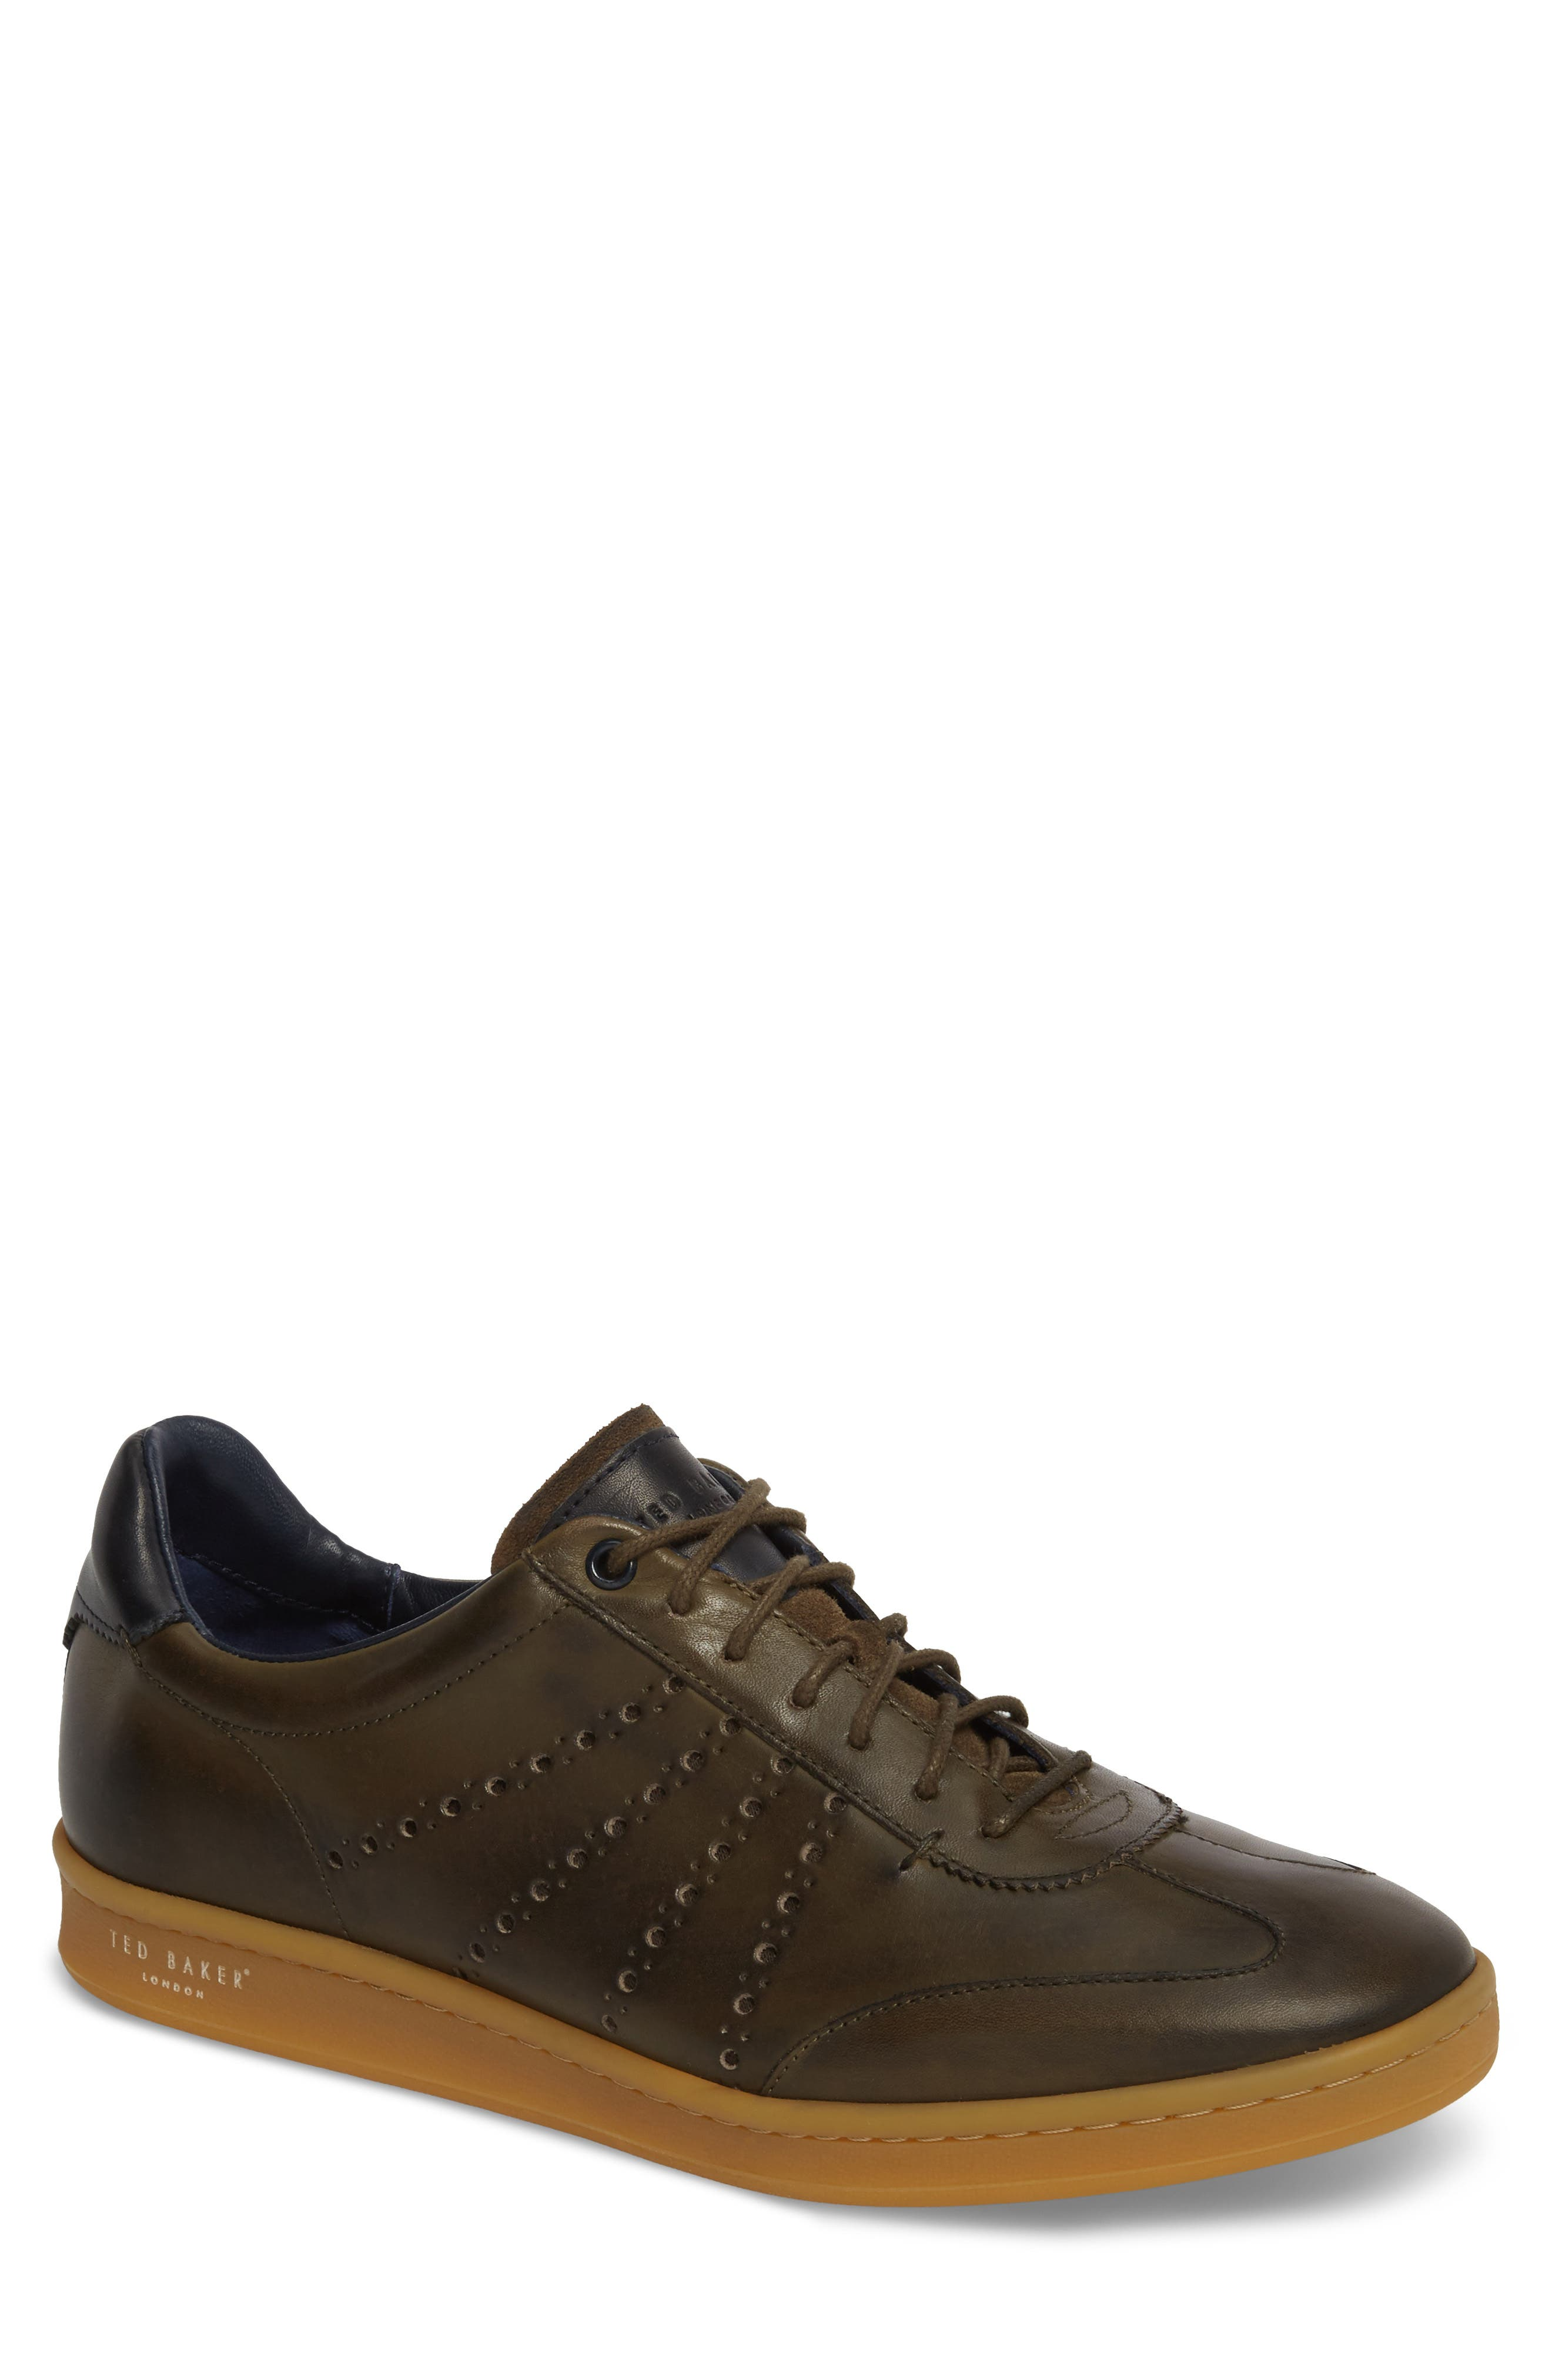 Orlee Sneaker,                         Main,                         color, Dark Green Leather